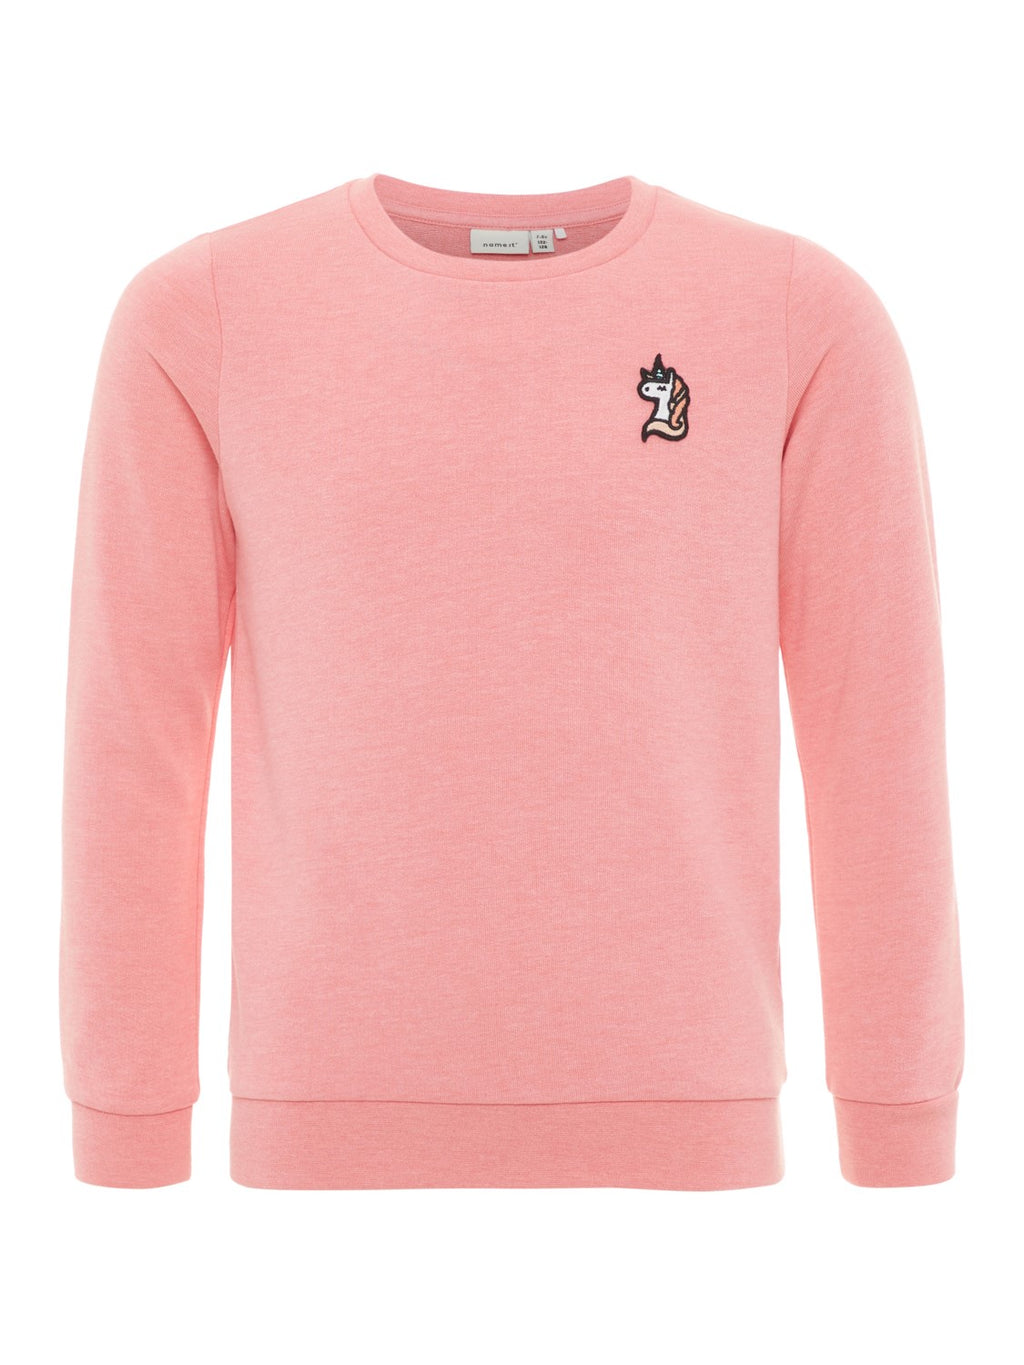 Name it : Sweater Unicorn Sweater Outlet Kamélie.be